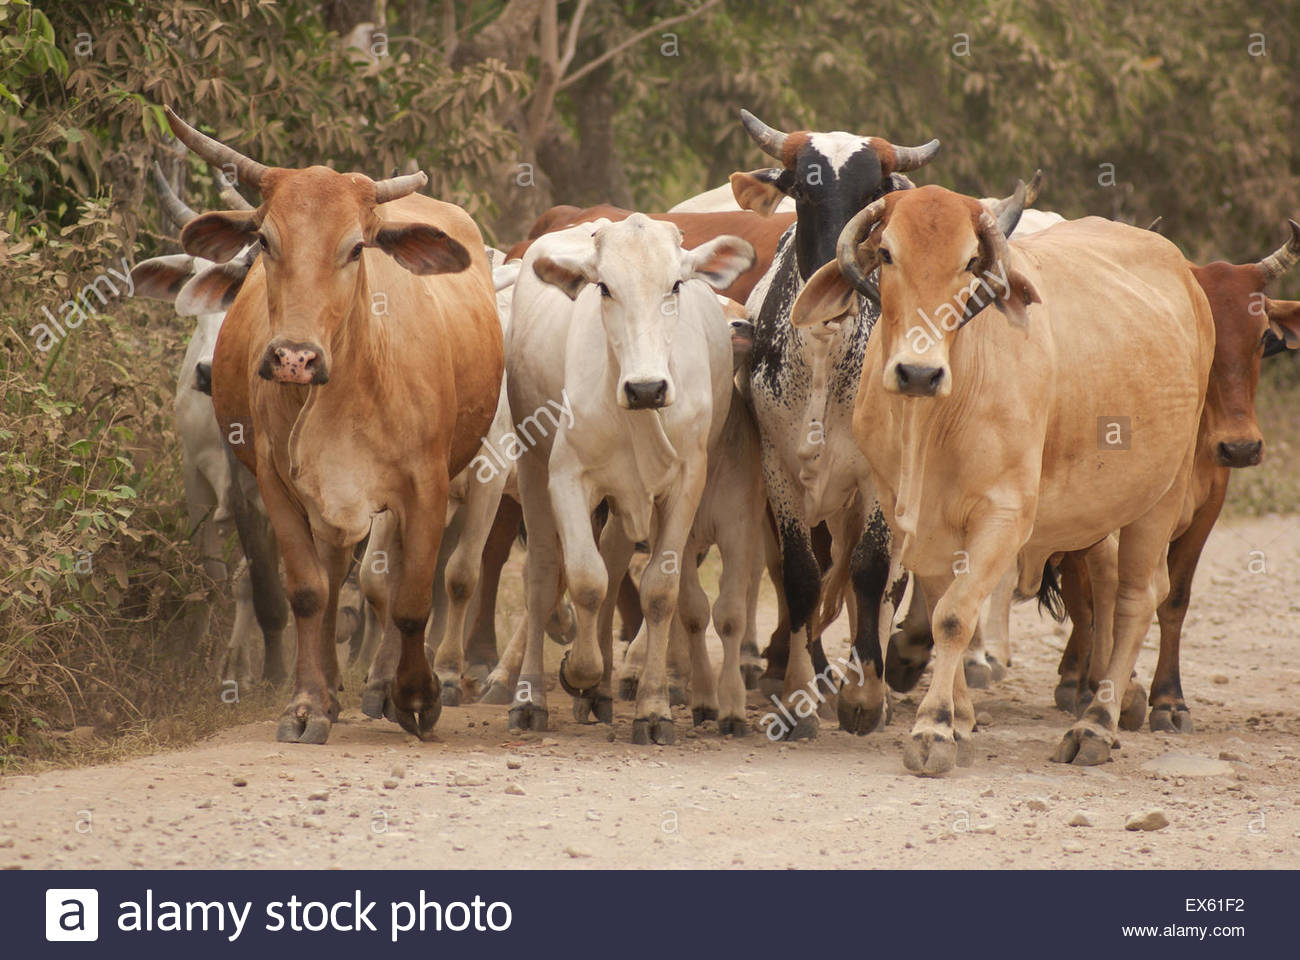 Cow Gridlock - A herd of cows walking along a dusty road in rural Mexico - Stock Image